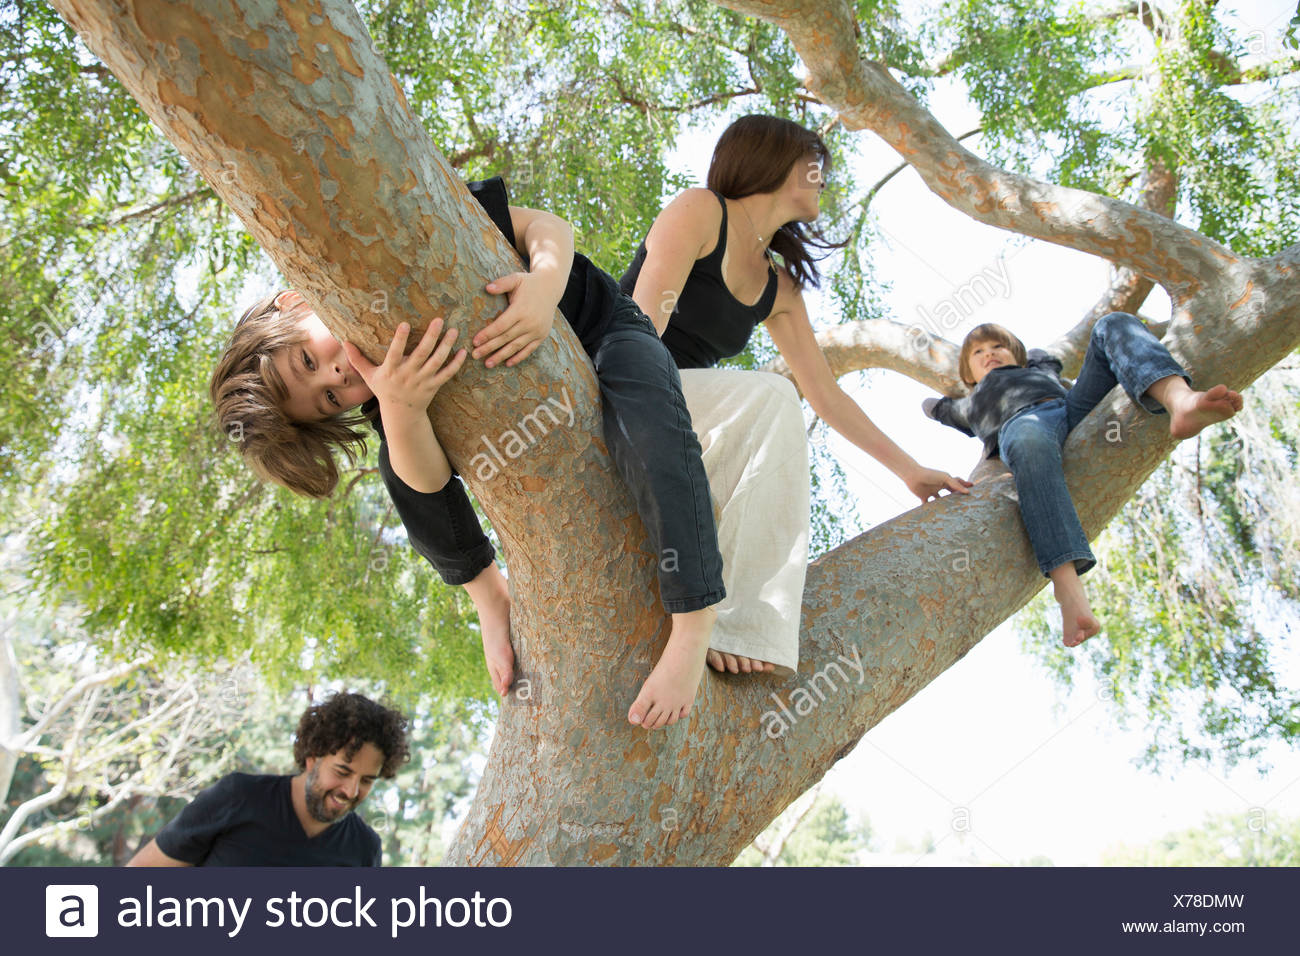 Family with two boys climbing on park tree - Stock Image